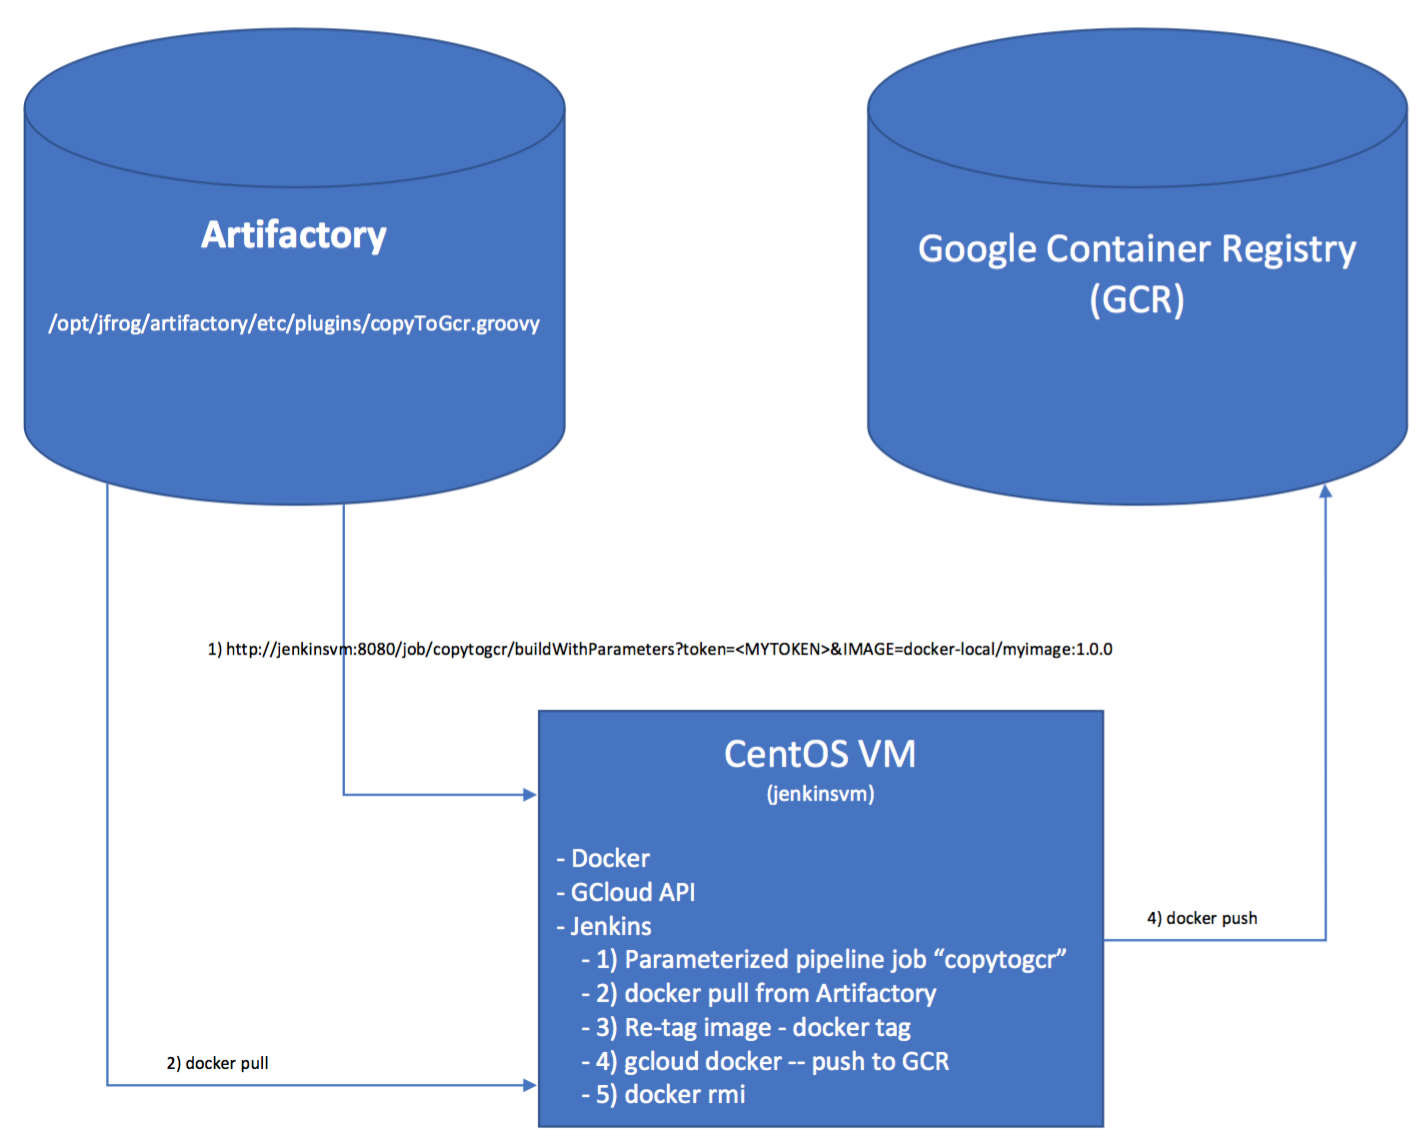 Replicate docker images from Artifactory to Google Container